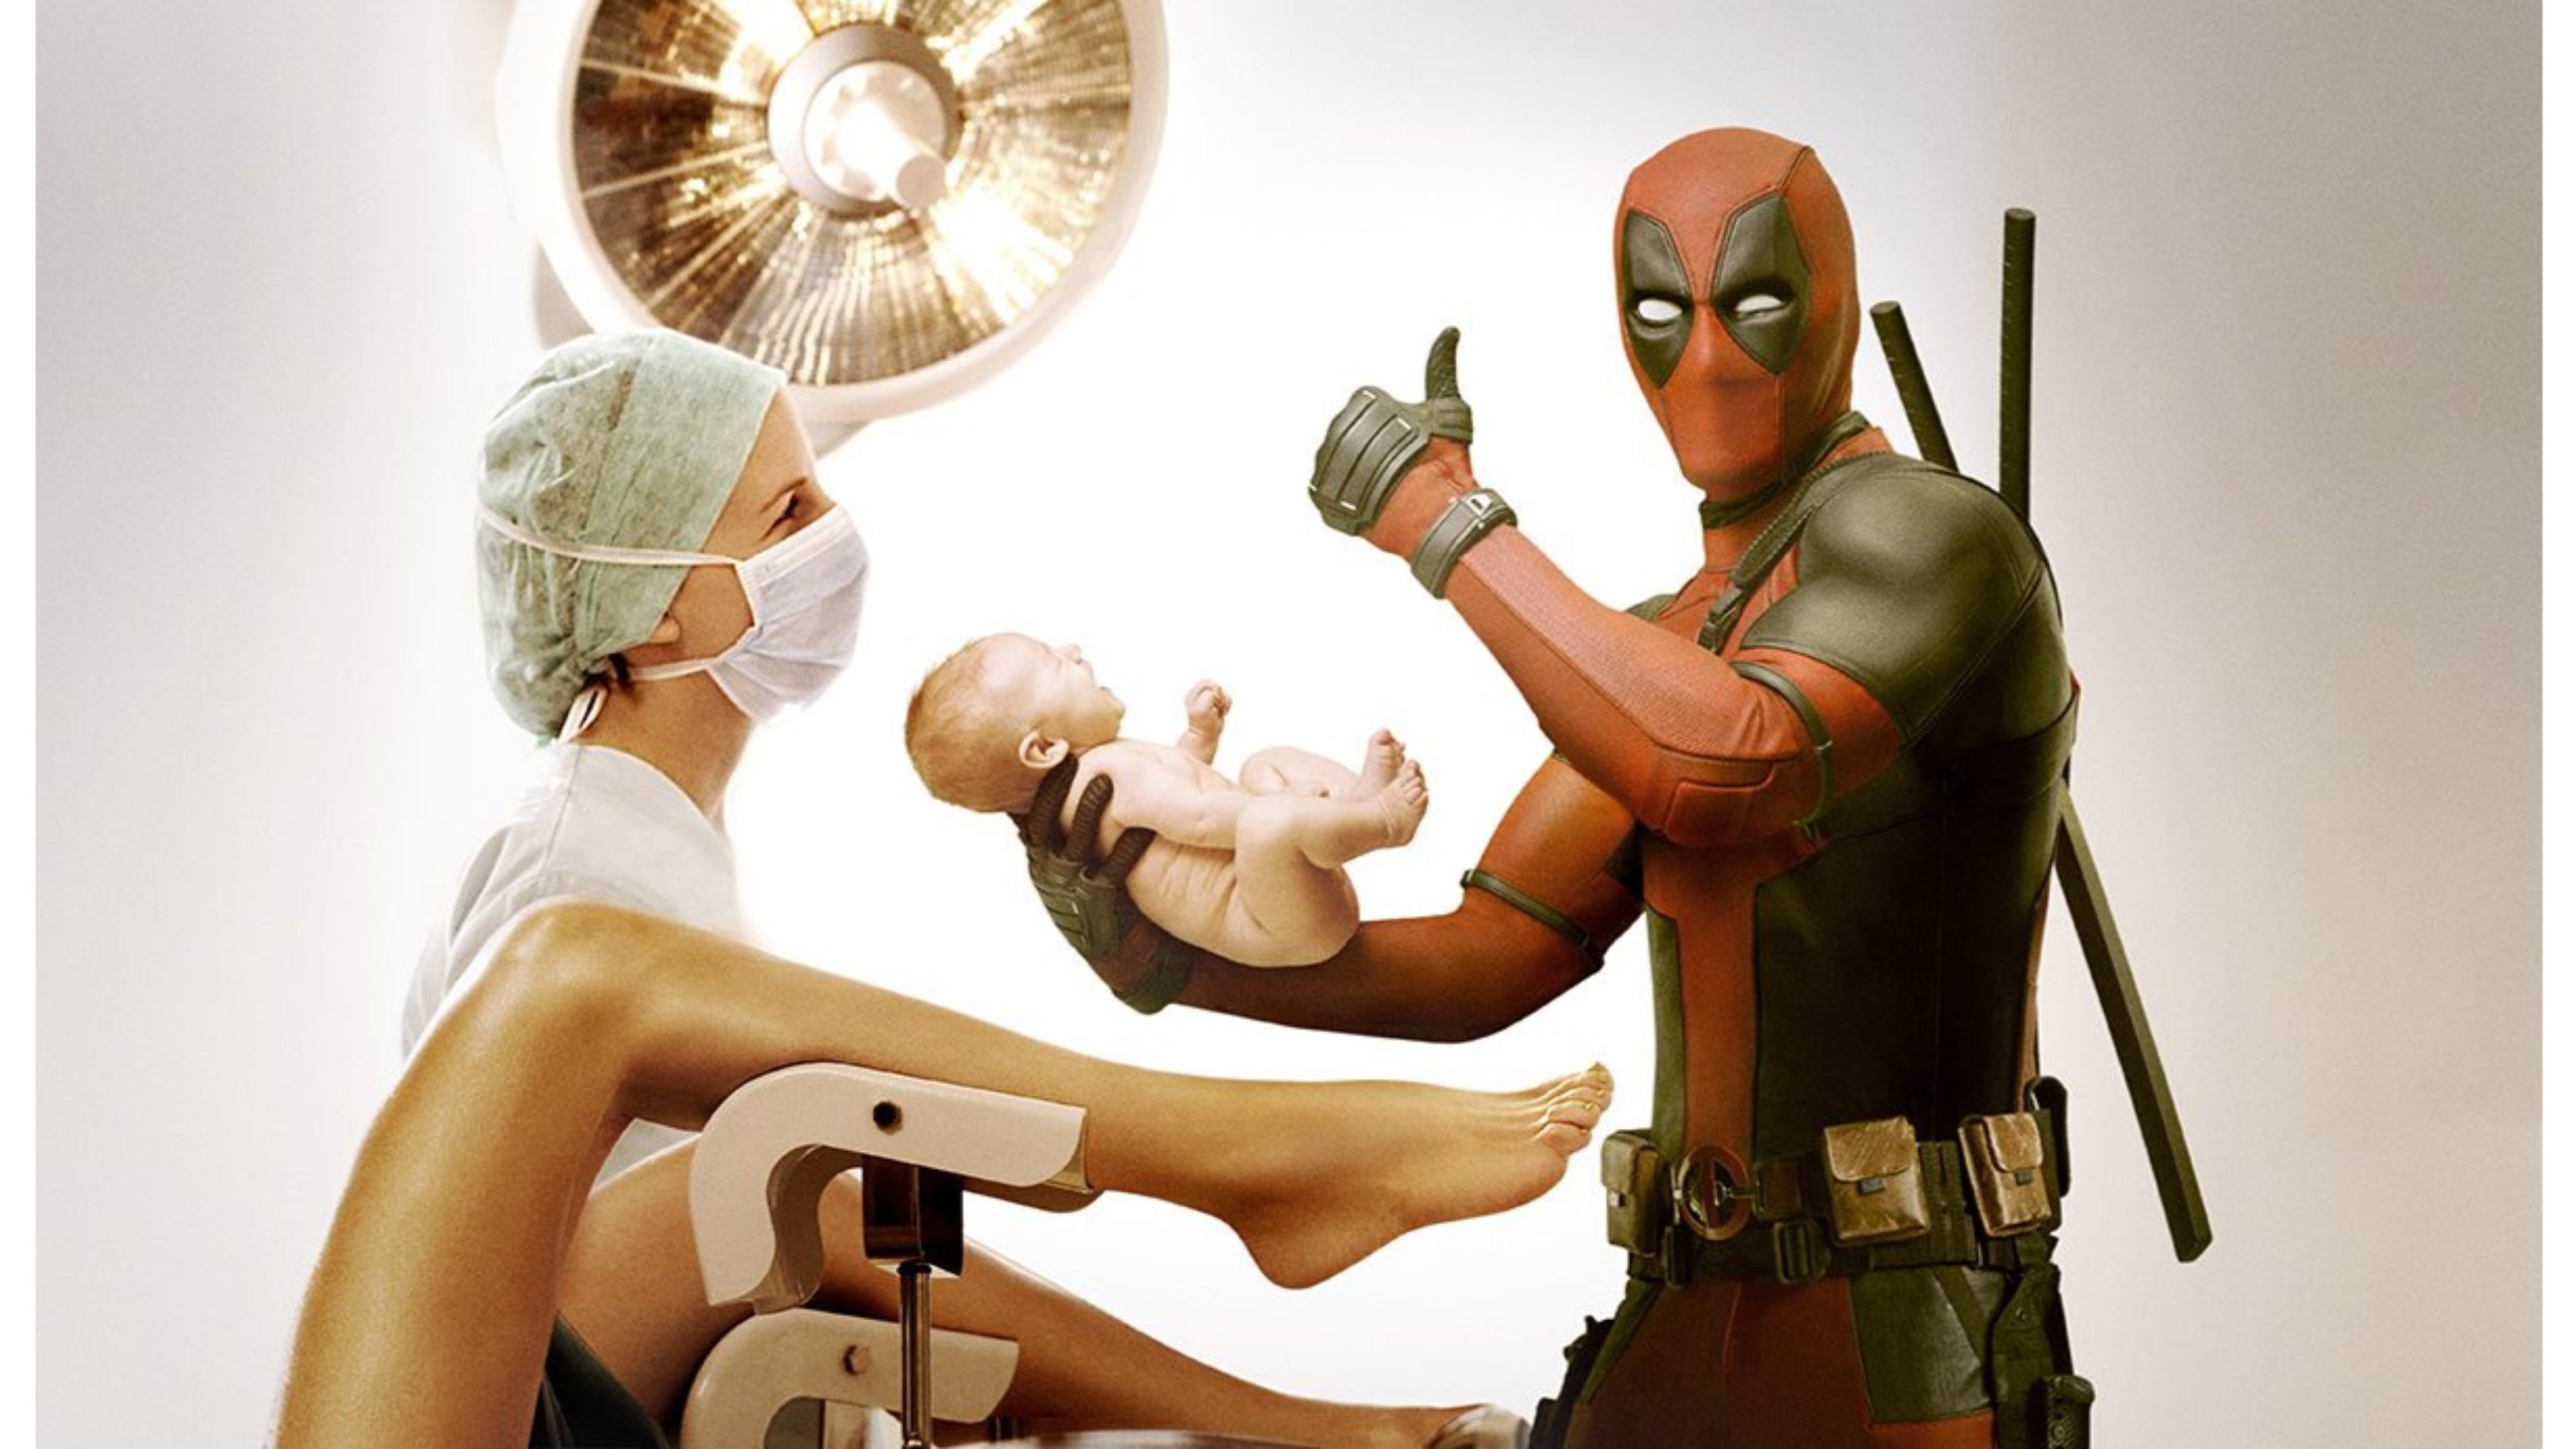 140 Funny Deadpool Android Iphone Desktop Hd Backgrounds Wallpapers 1080p 4k 3840x2160 2020